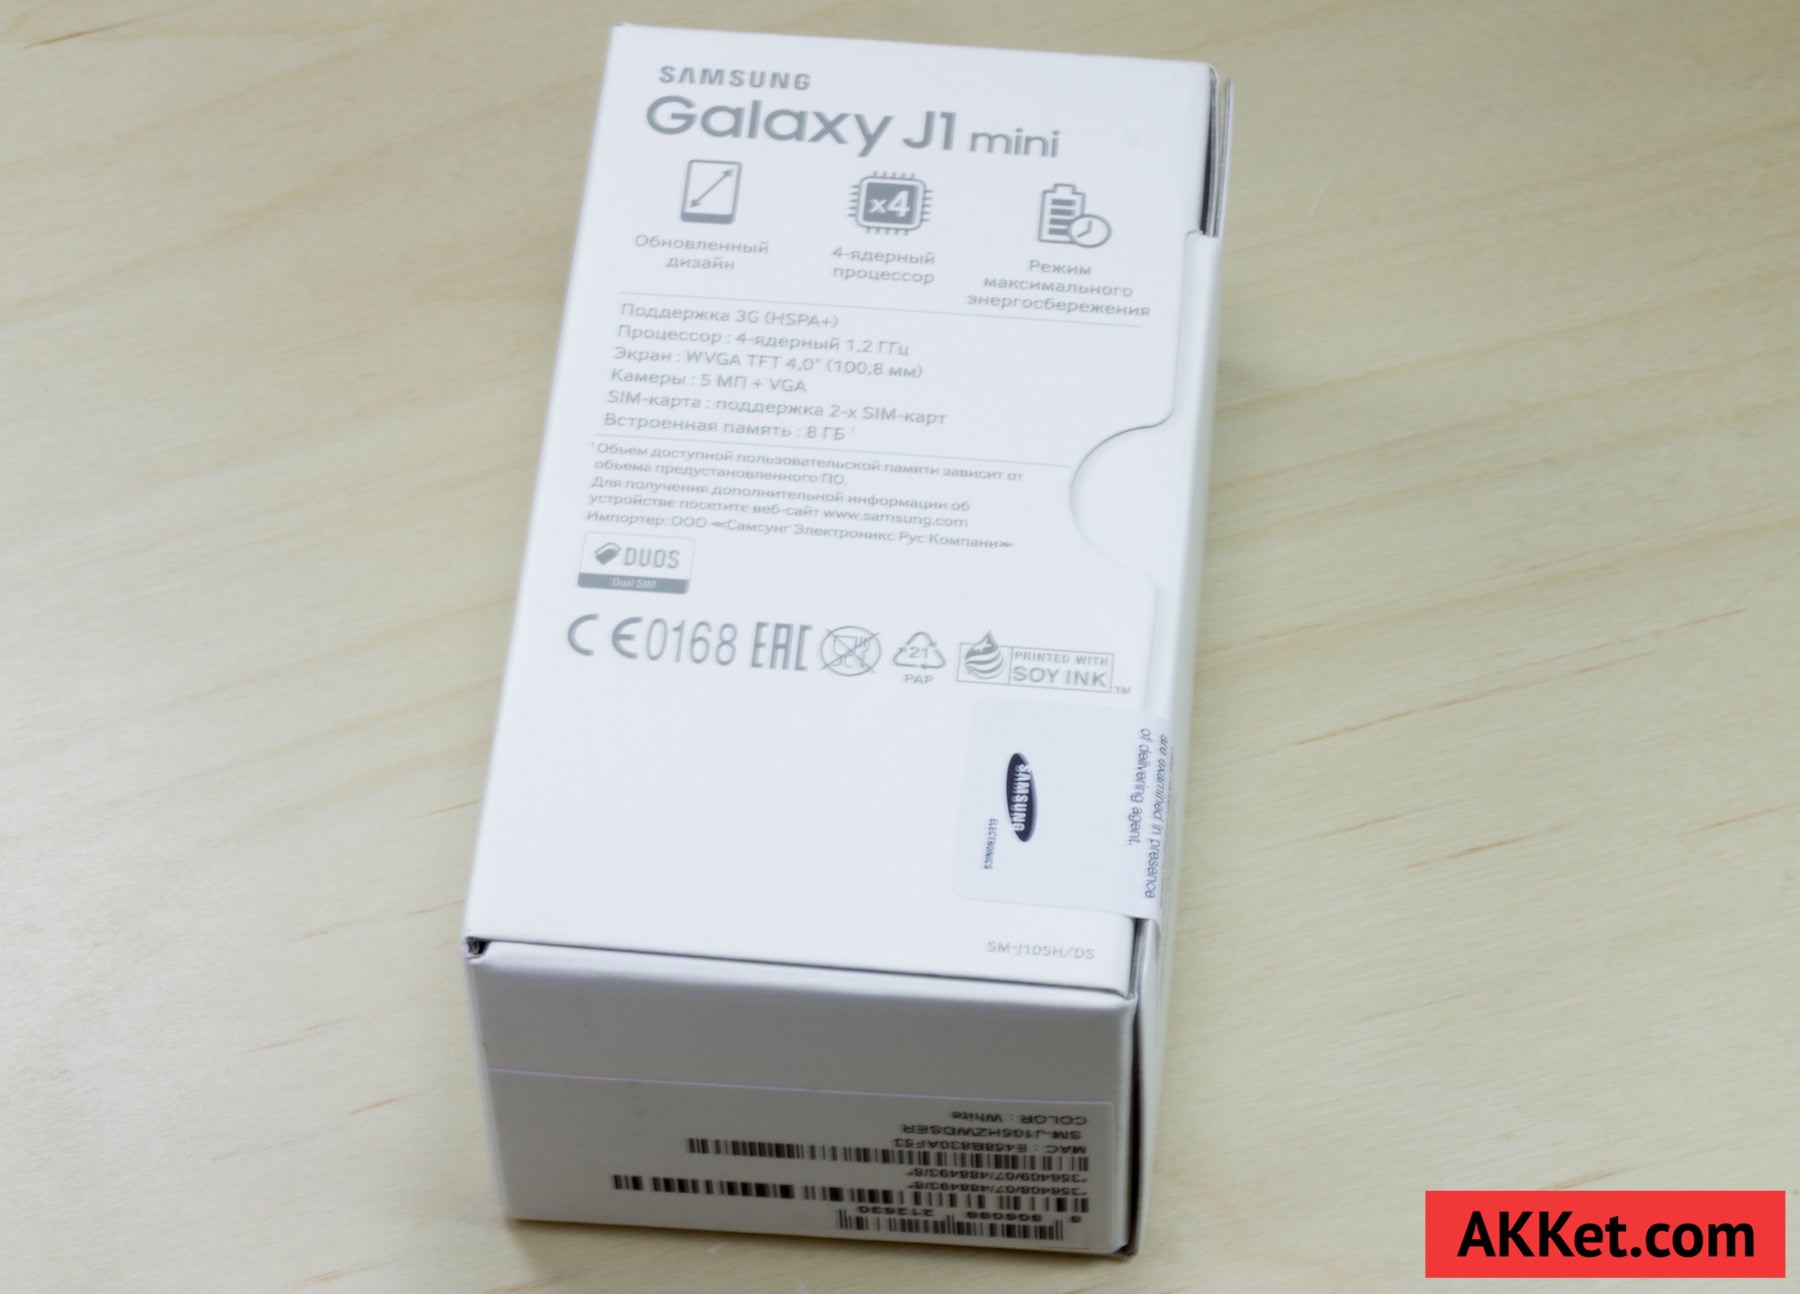 Samsung Galaxy J1 mini Duos Android 5.1.1 Lollipop Review 2